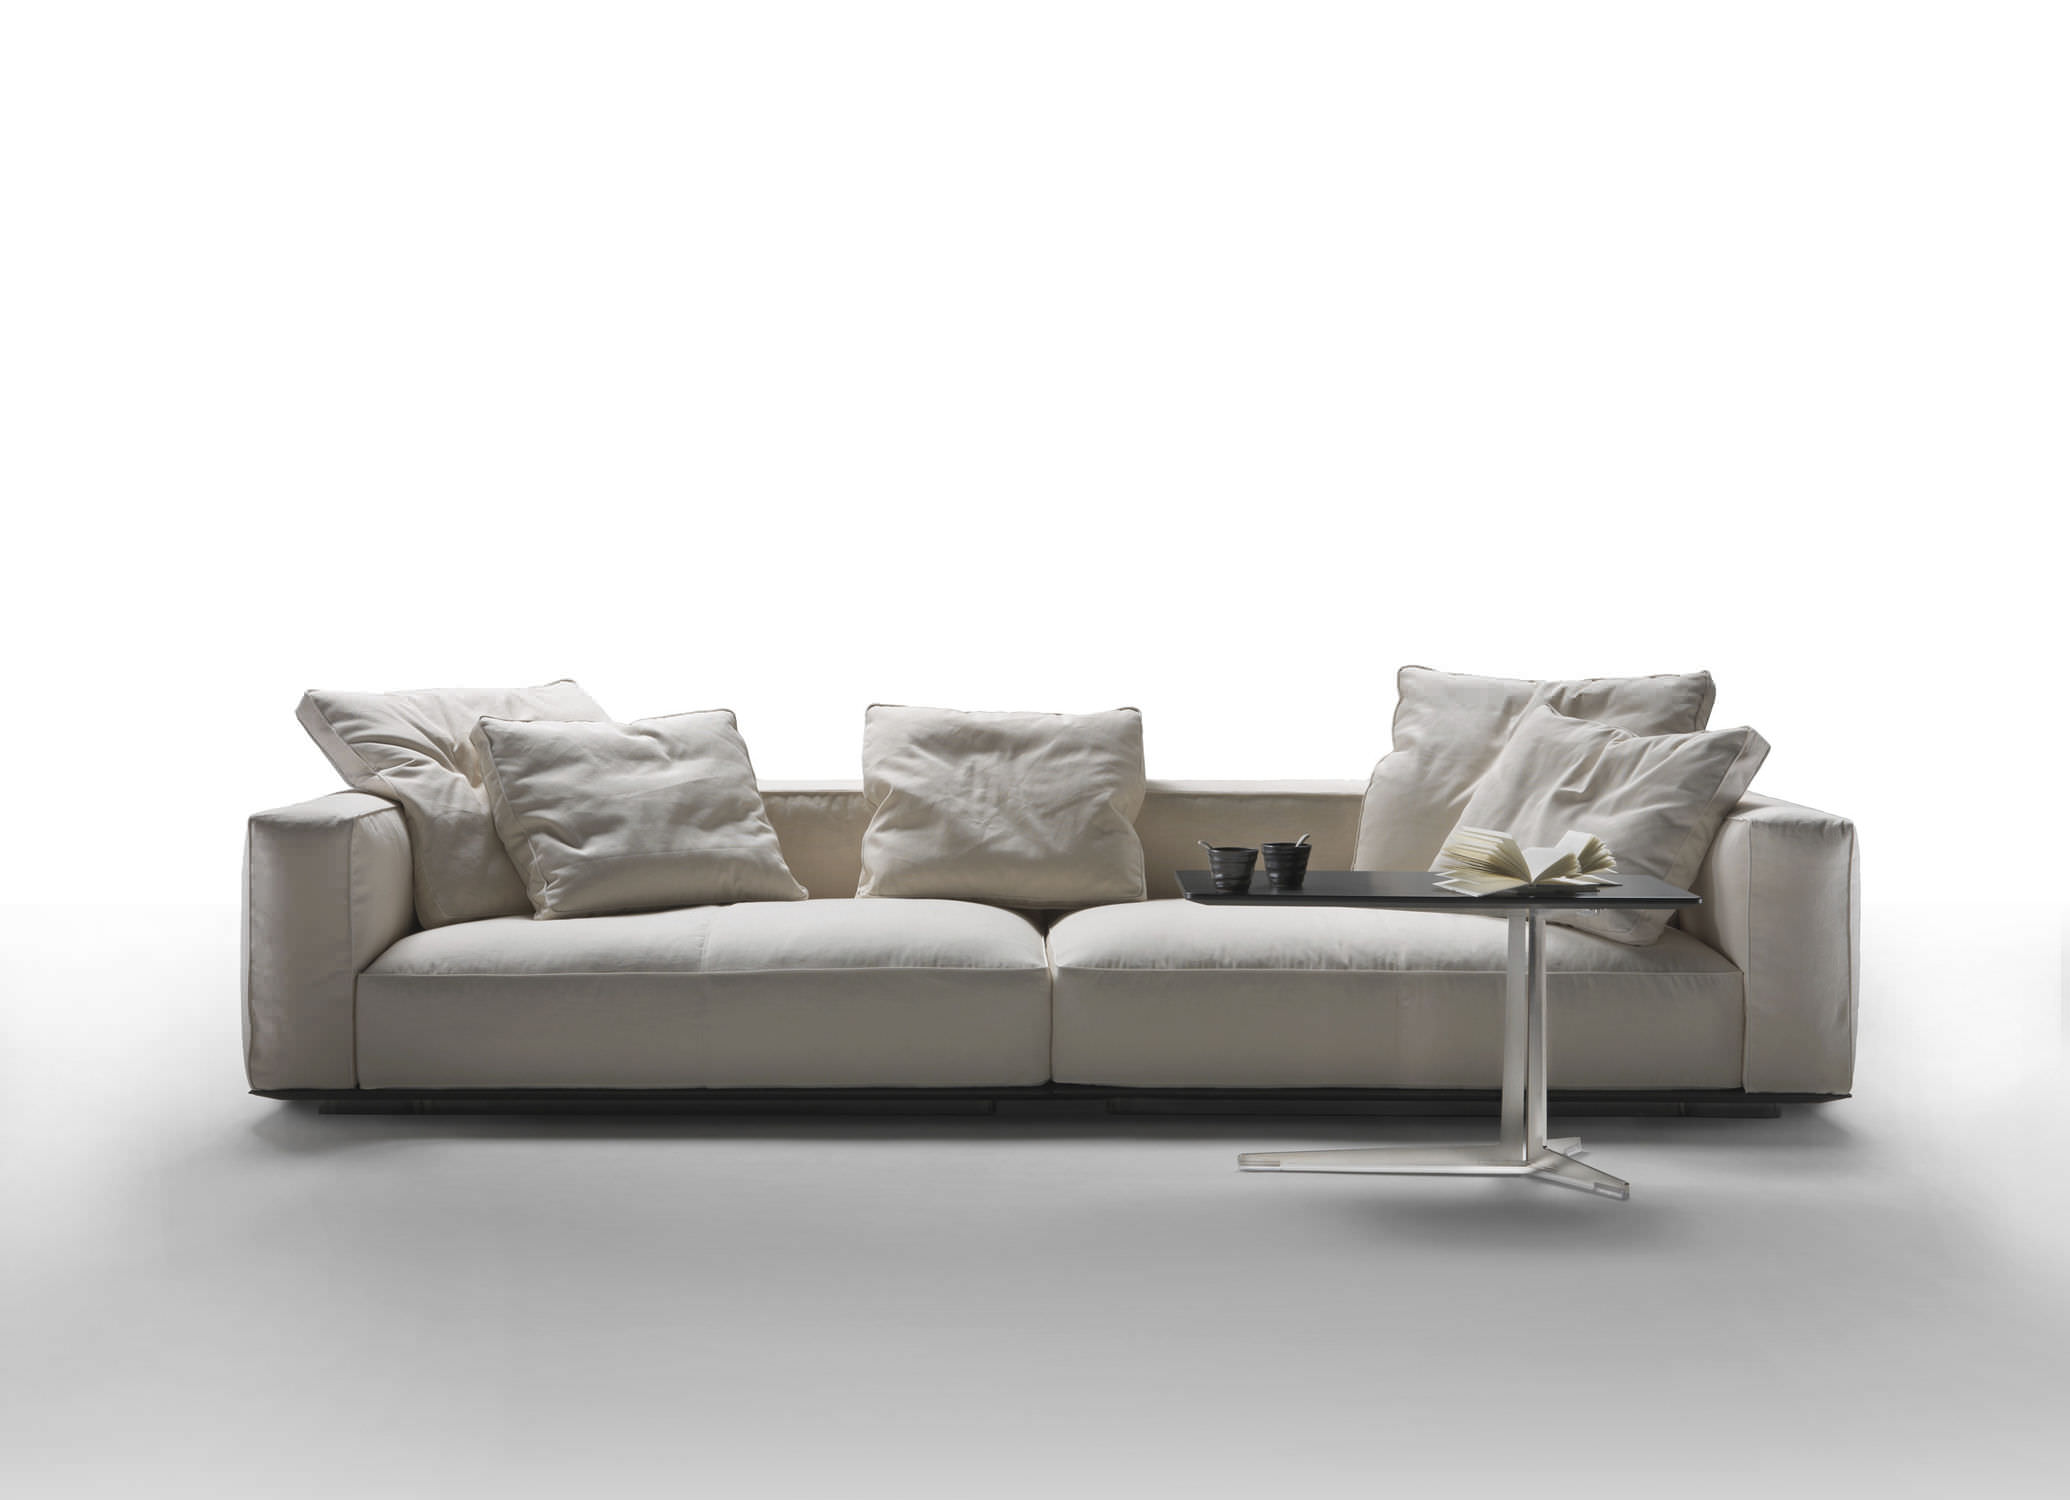 Modular sofa / corner / contemporary / fabric - GRANDEMARE - FLEXFORM